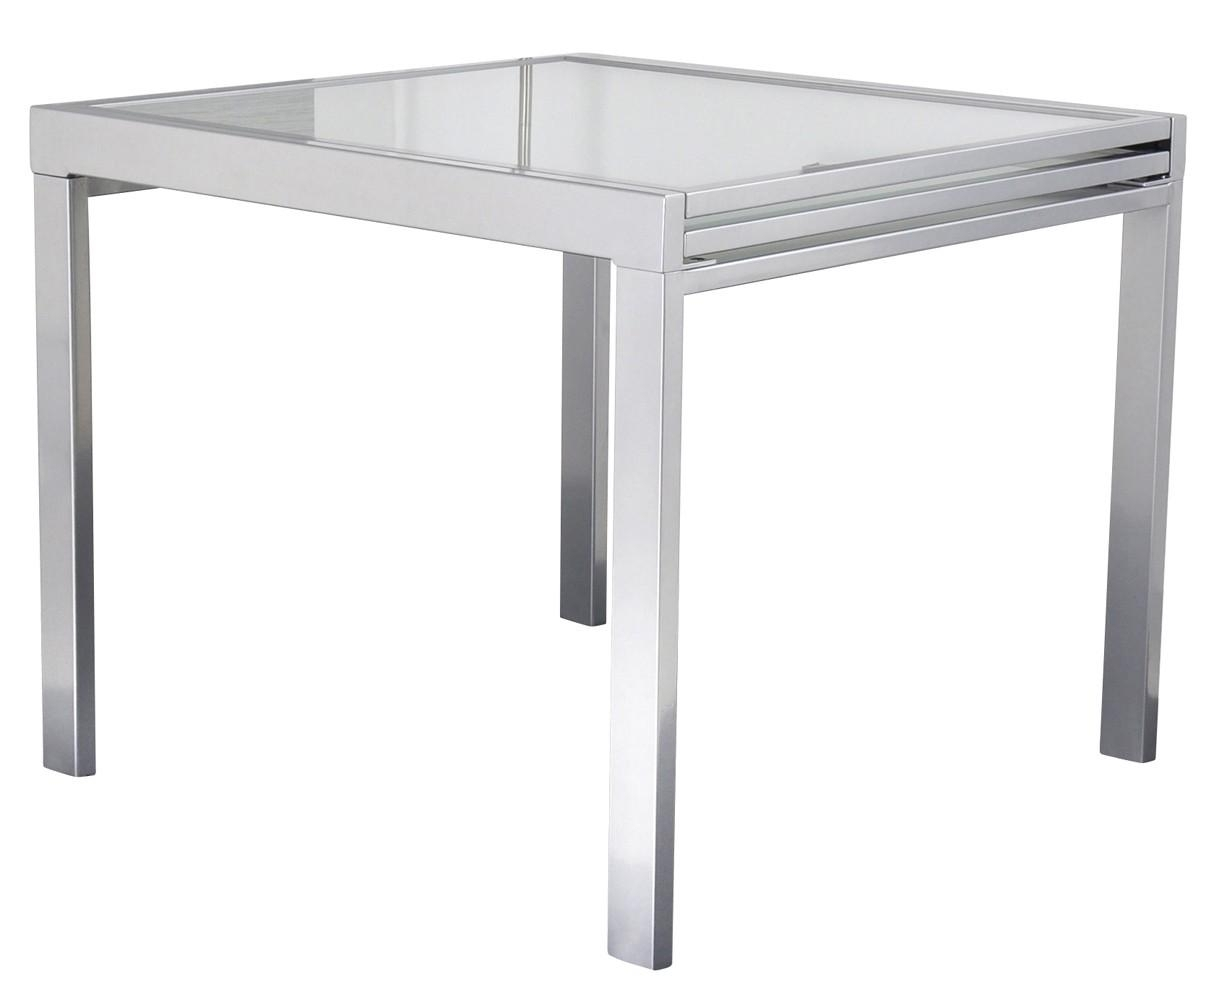 Les tendances table carr e extensible grise - Table a manger carree extensible ...